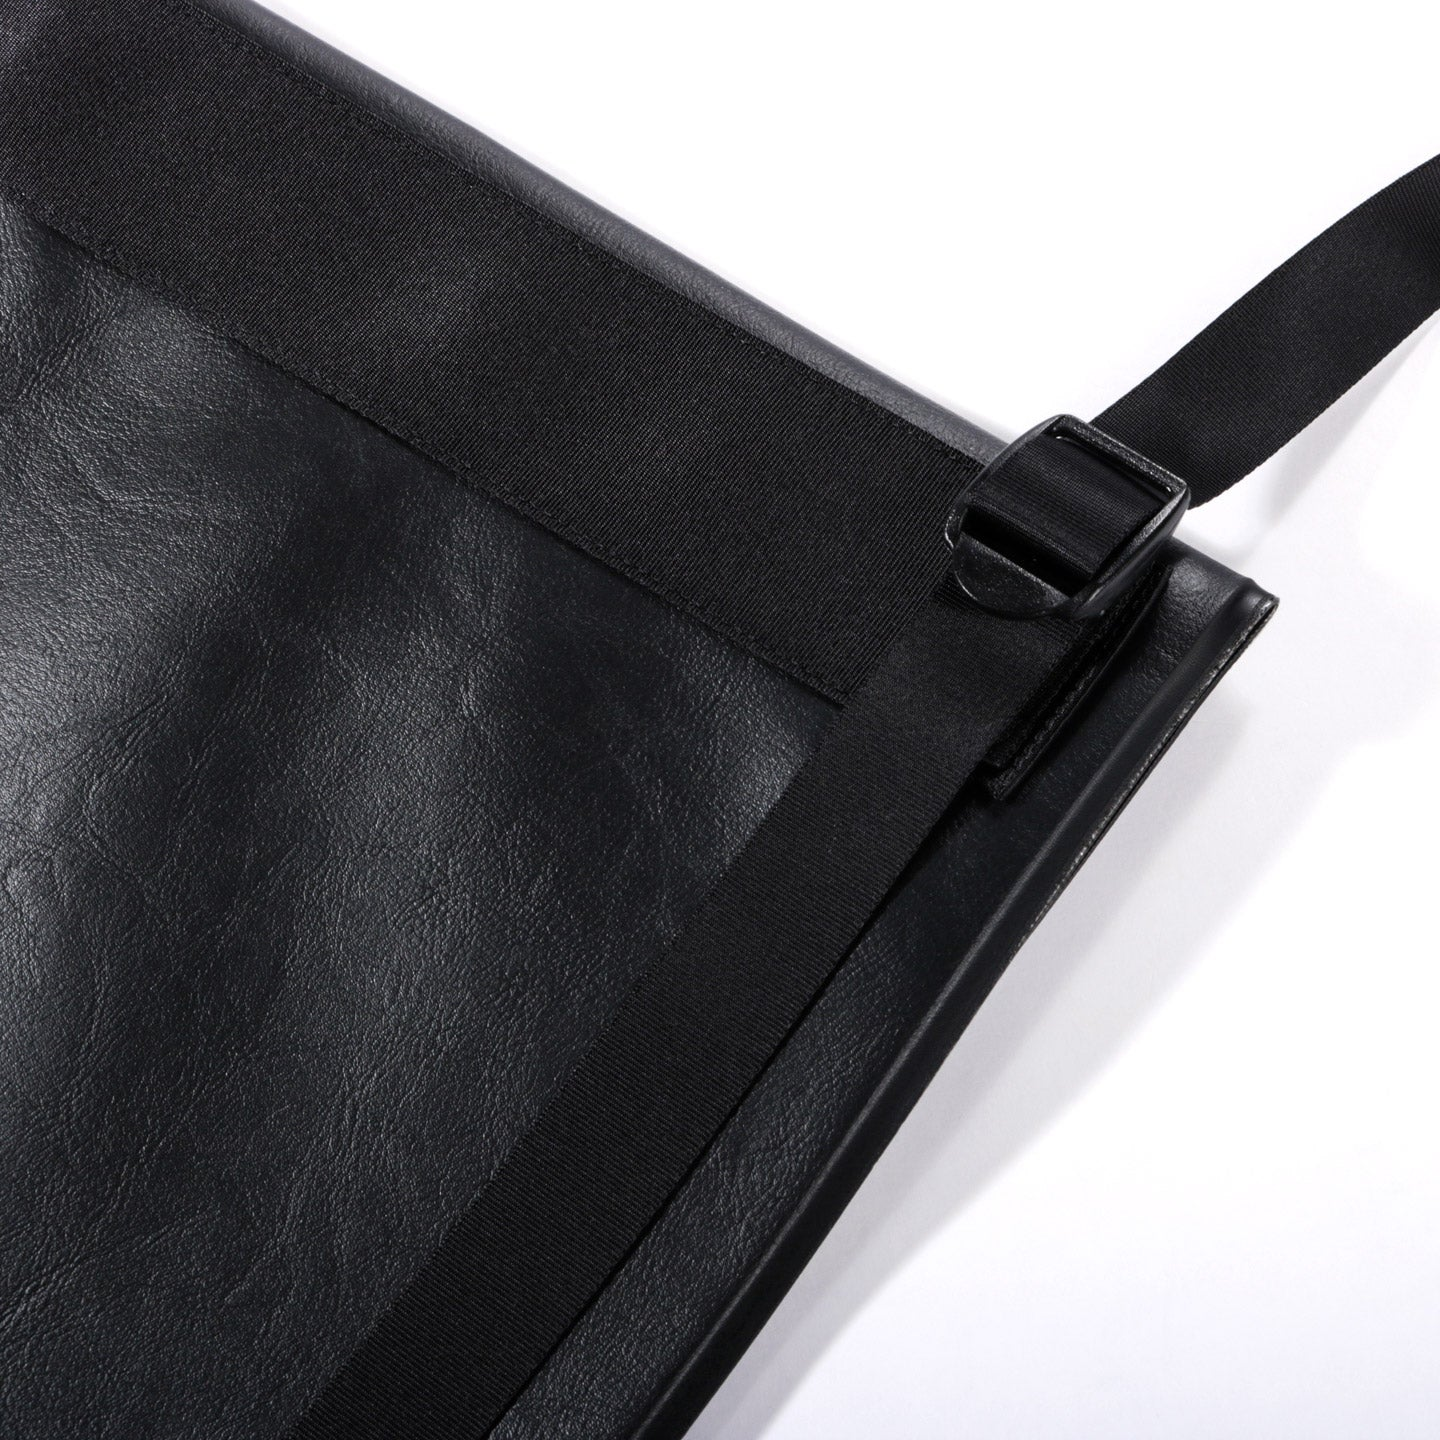 N.HOOLYWOOD 2202-KT02 CARDIGAN SWEATER BLACK